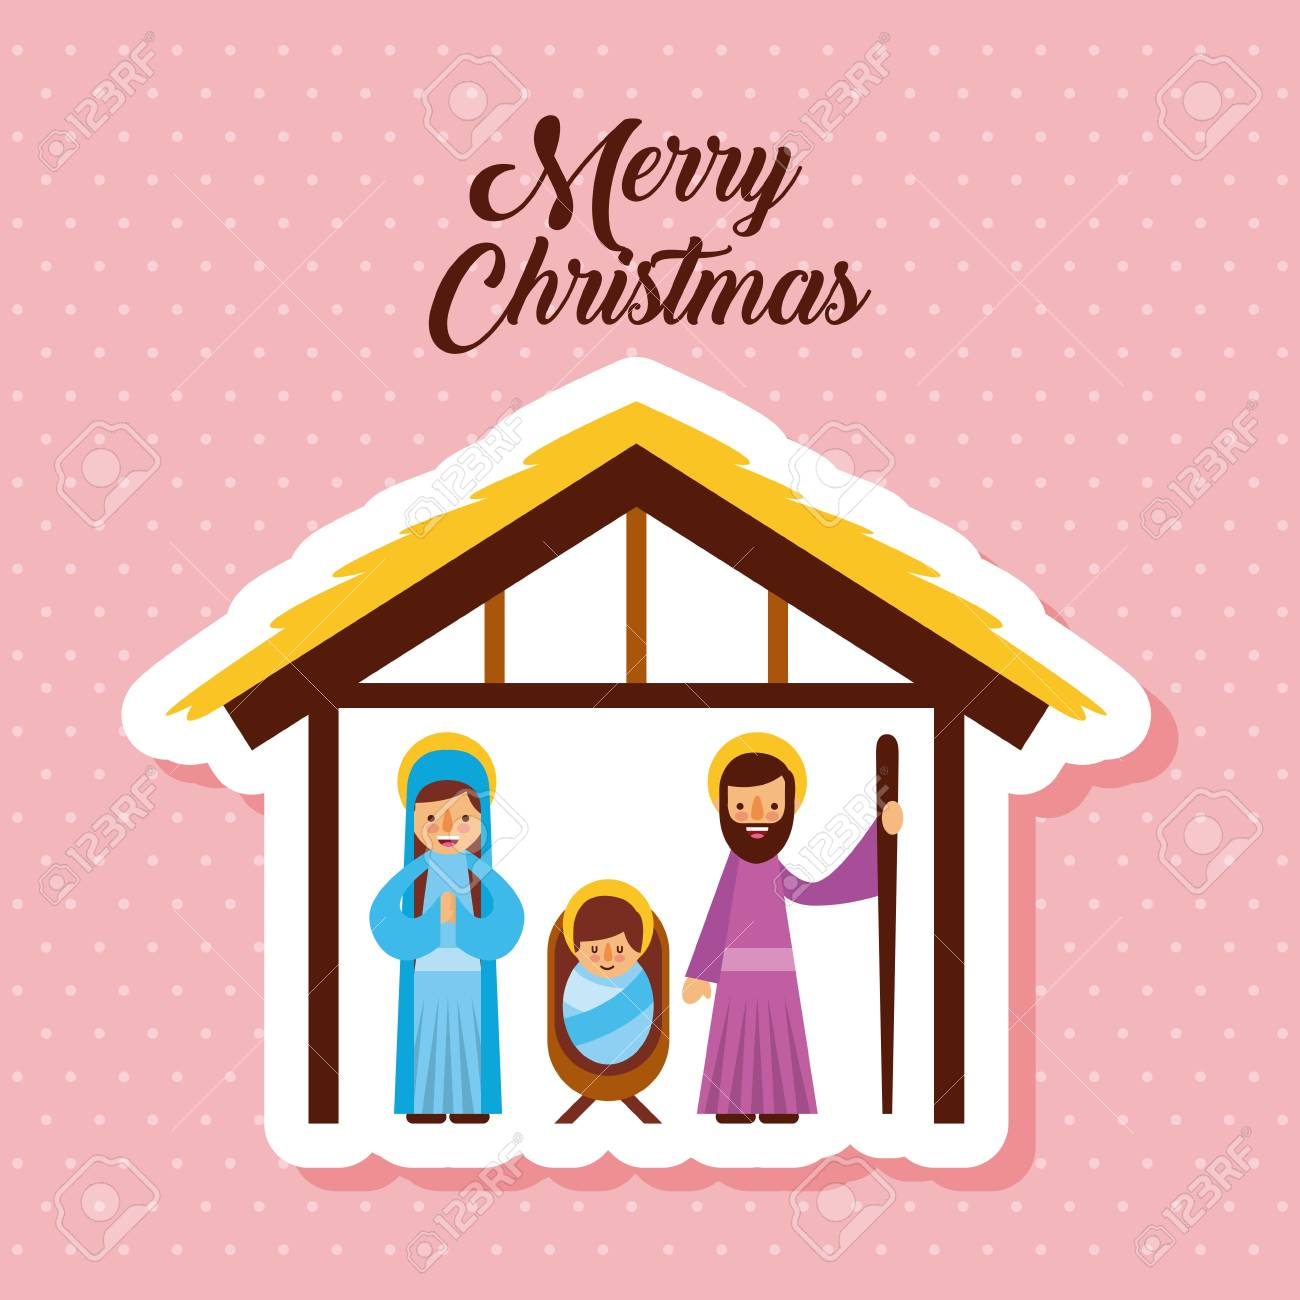 Religious Christmas Music Clipart.Merry Christmas Holy Family Traditional Religious Scene Of The